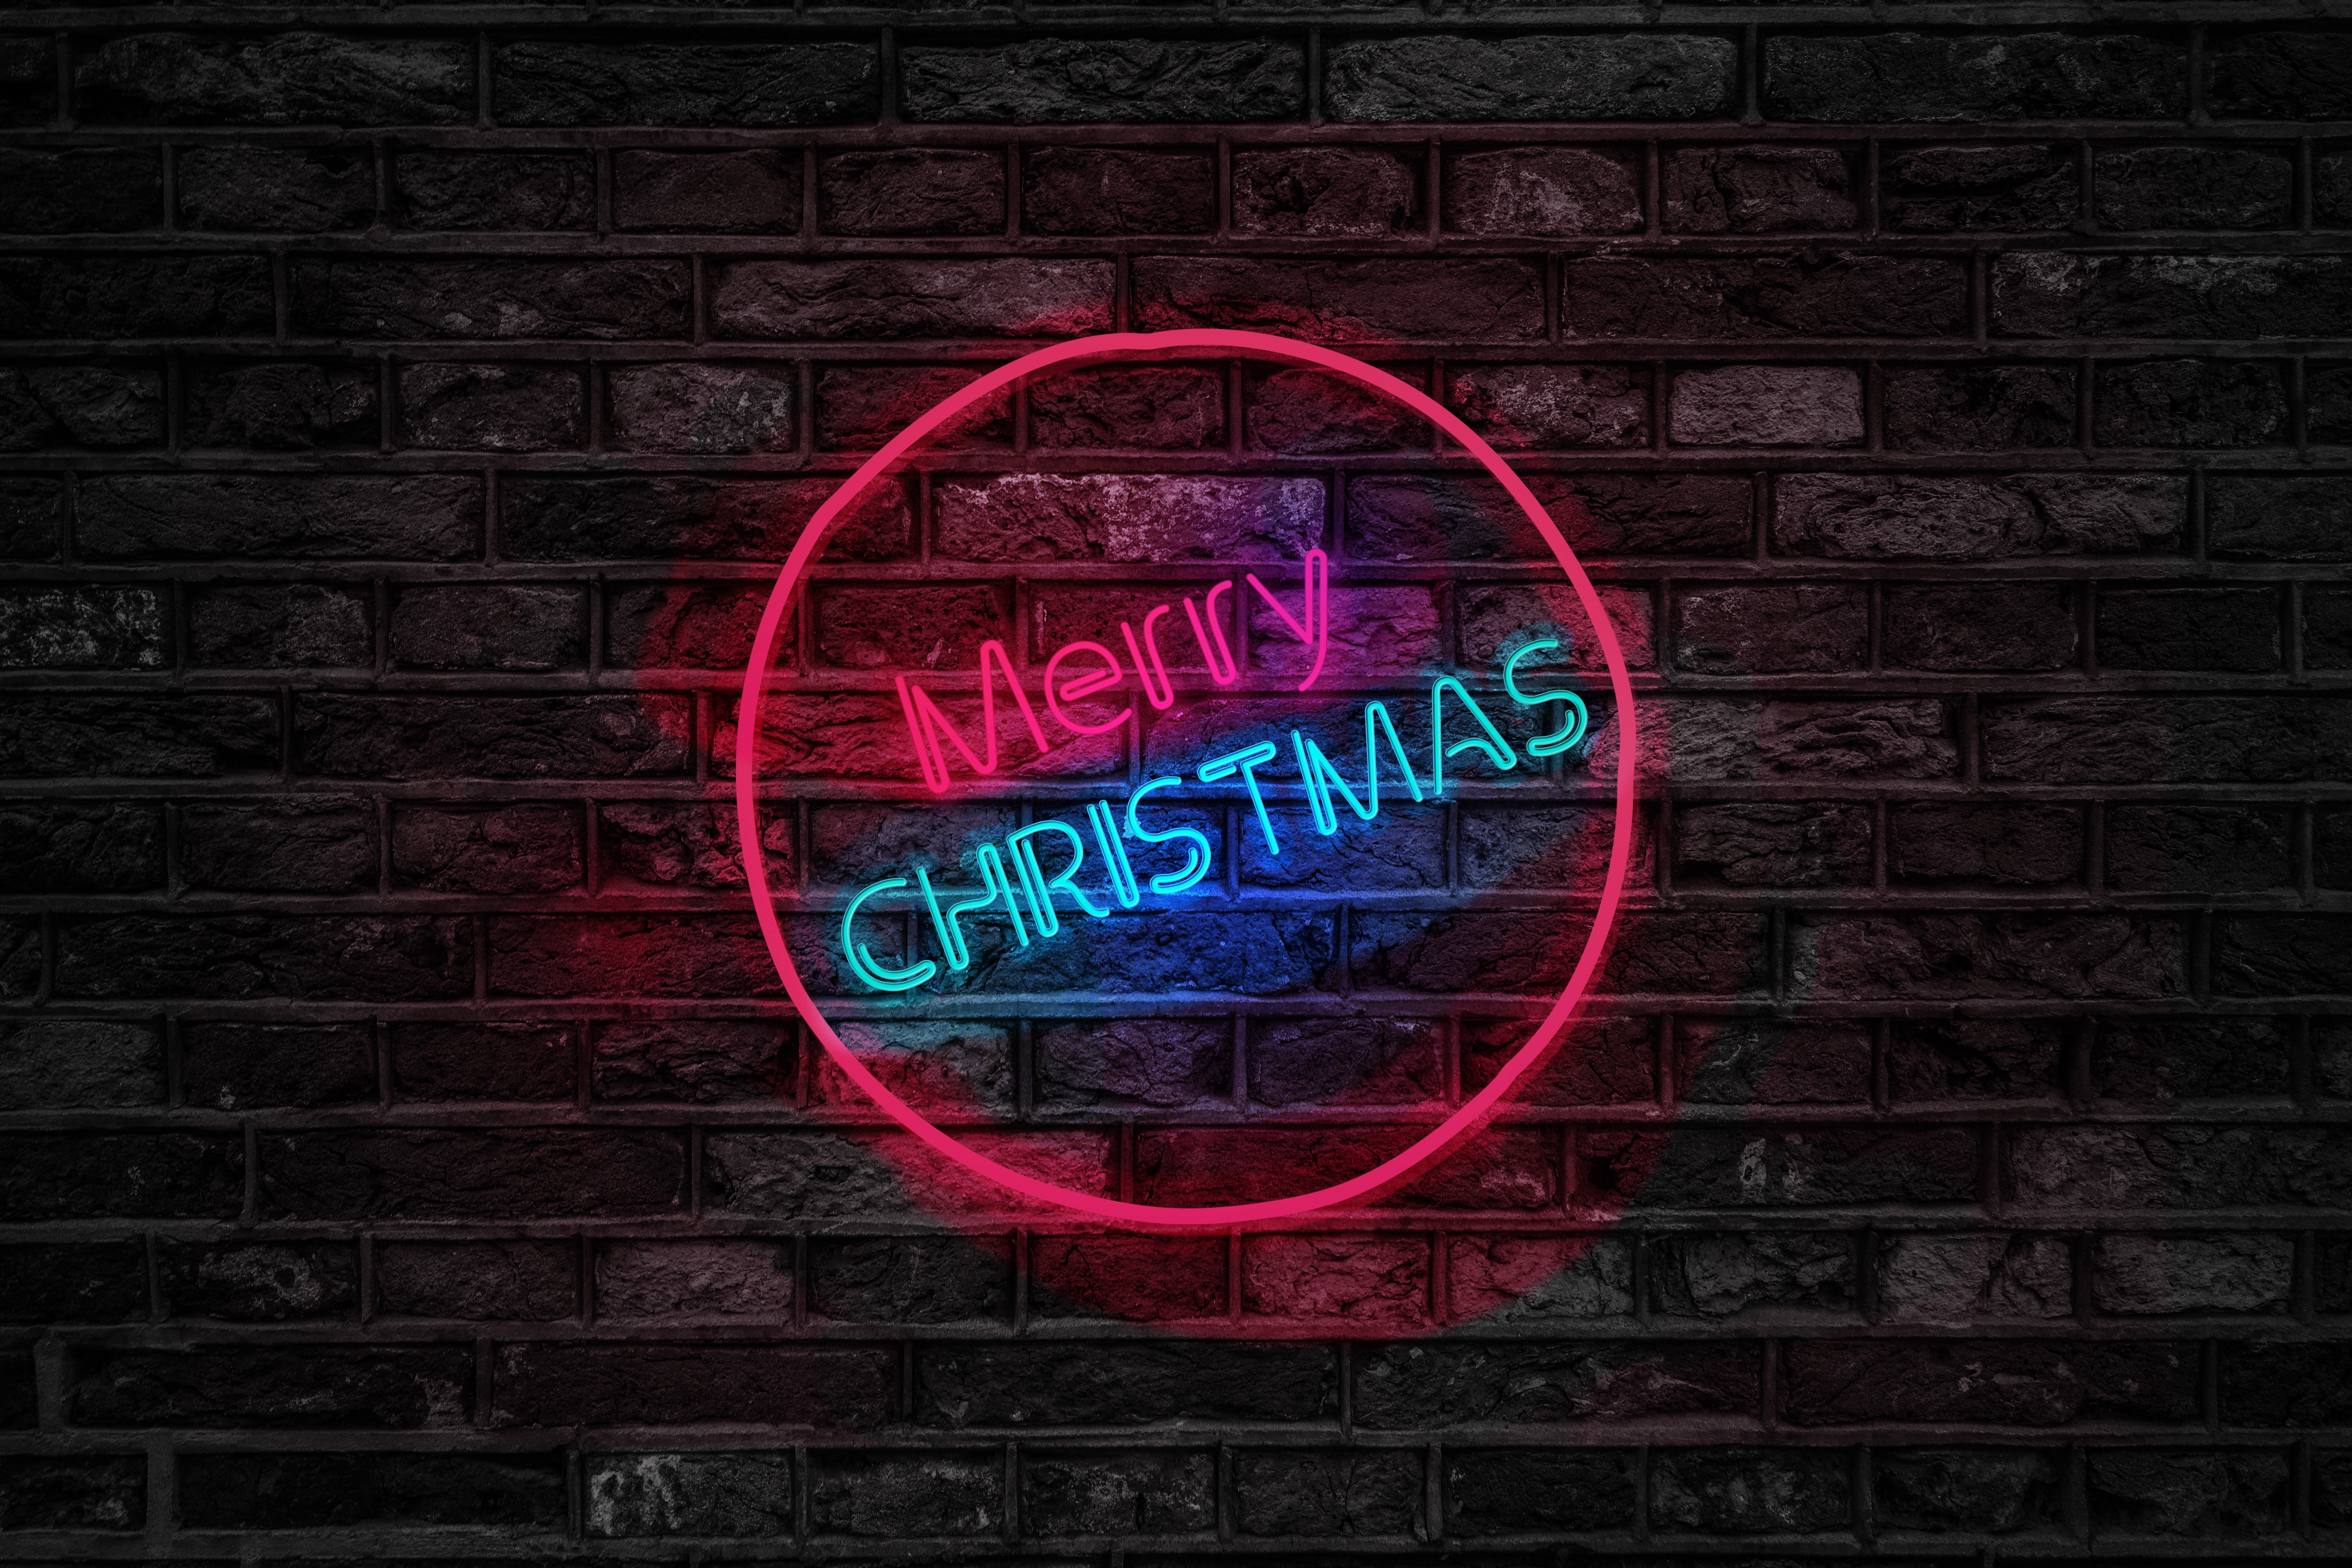 turned on red and blue merry christmas neon sign neon lights night time